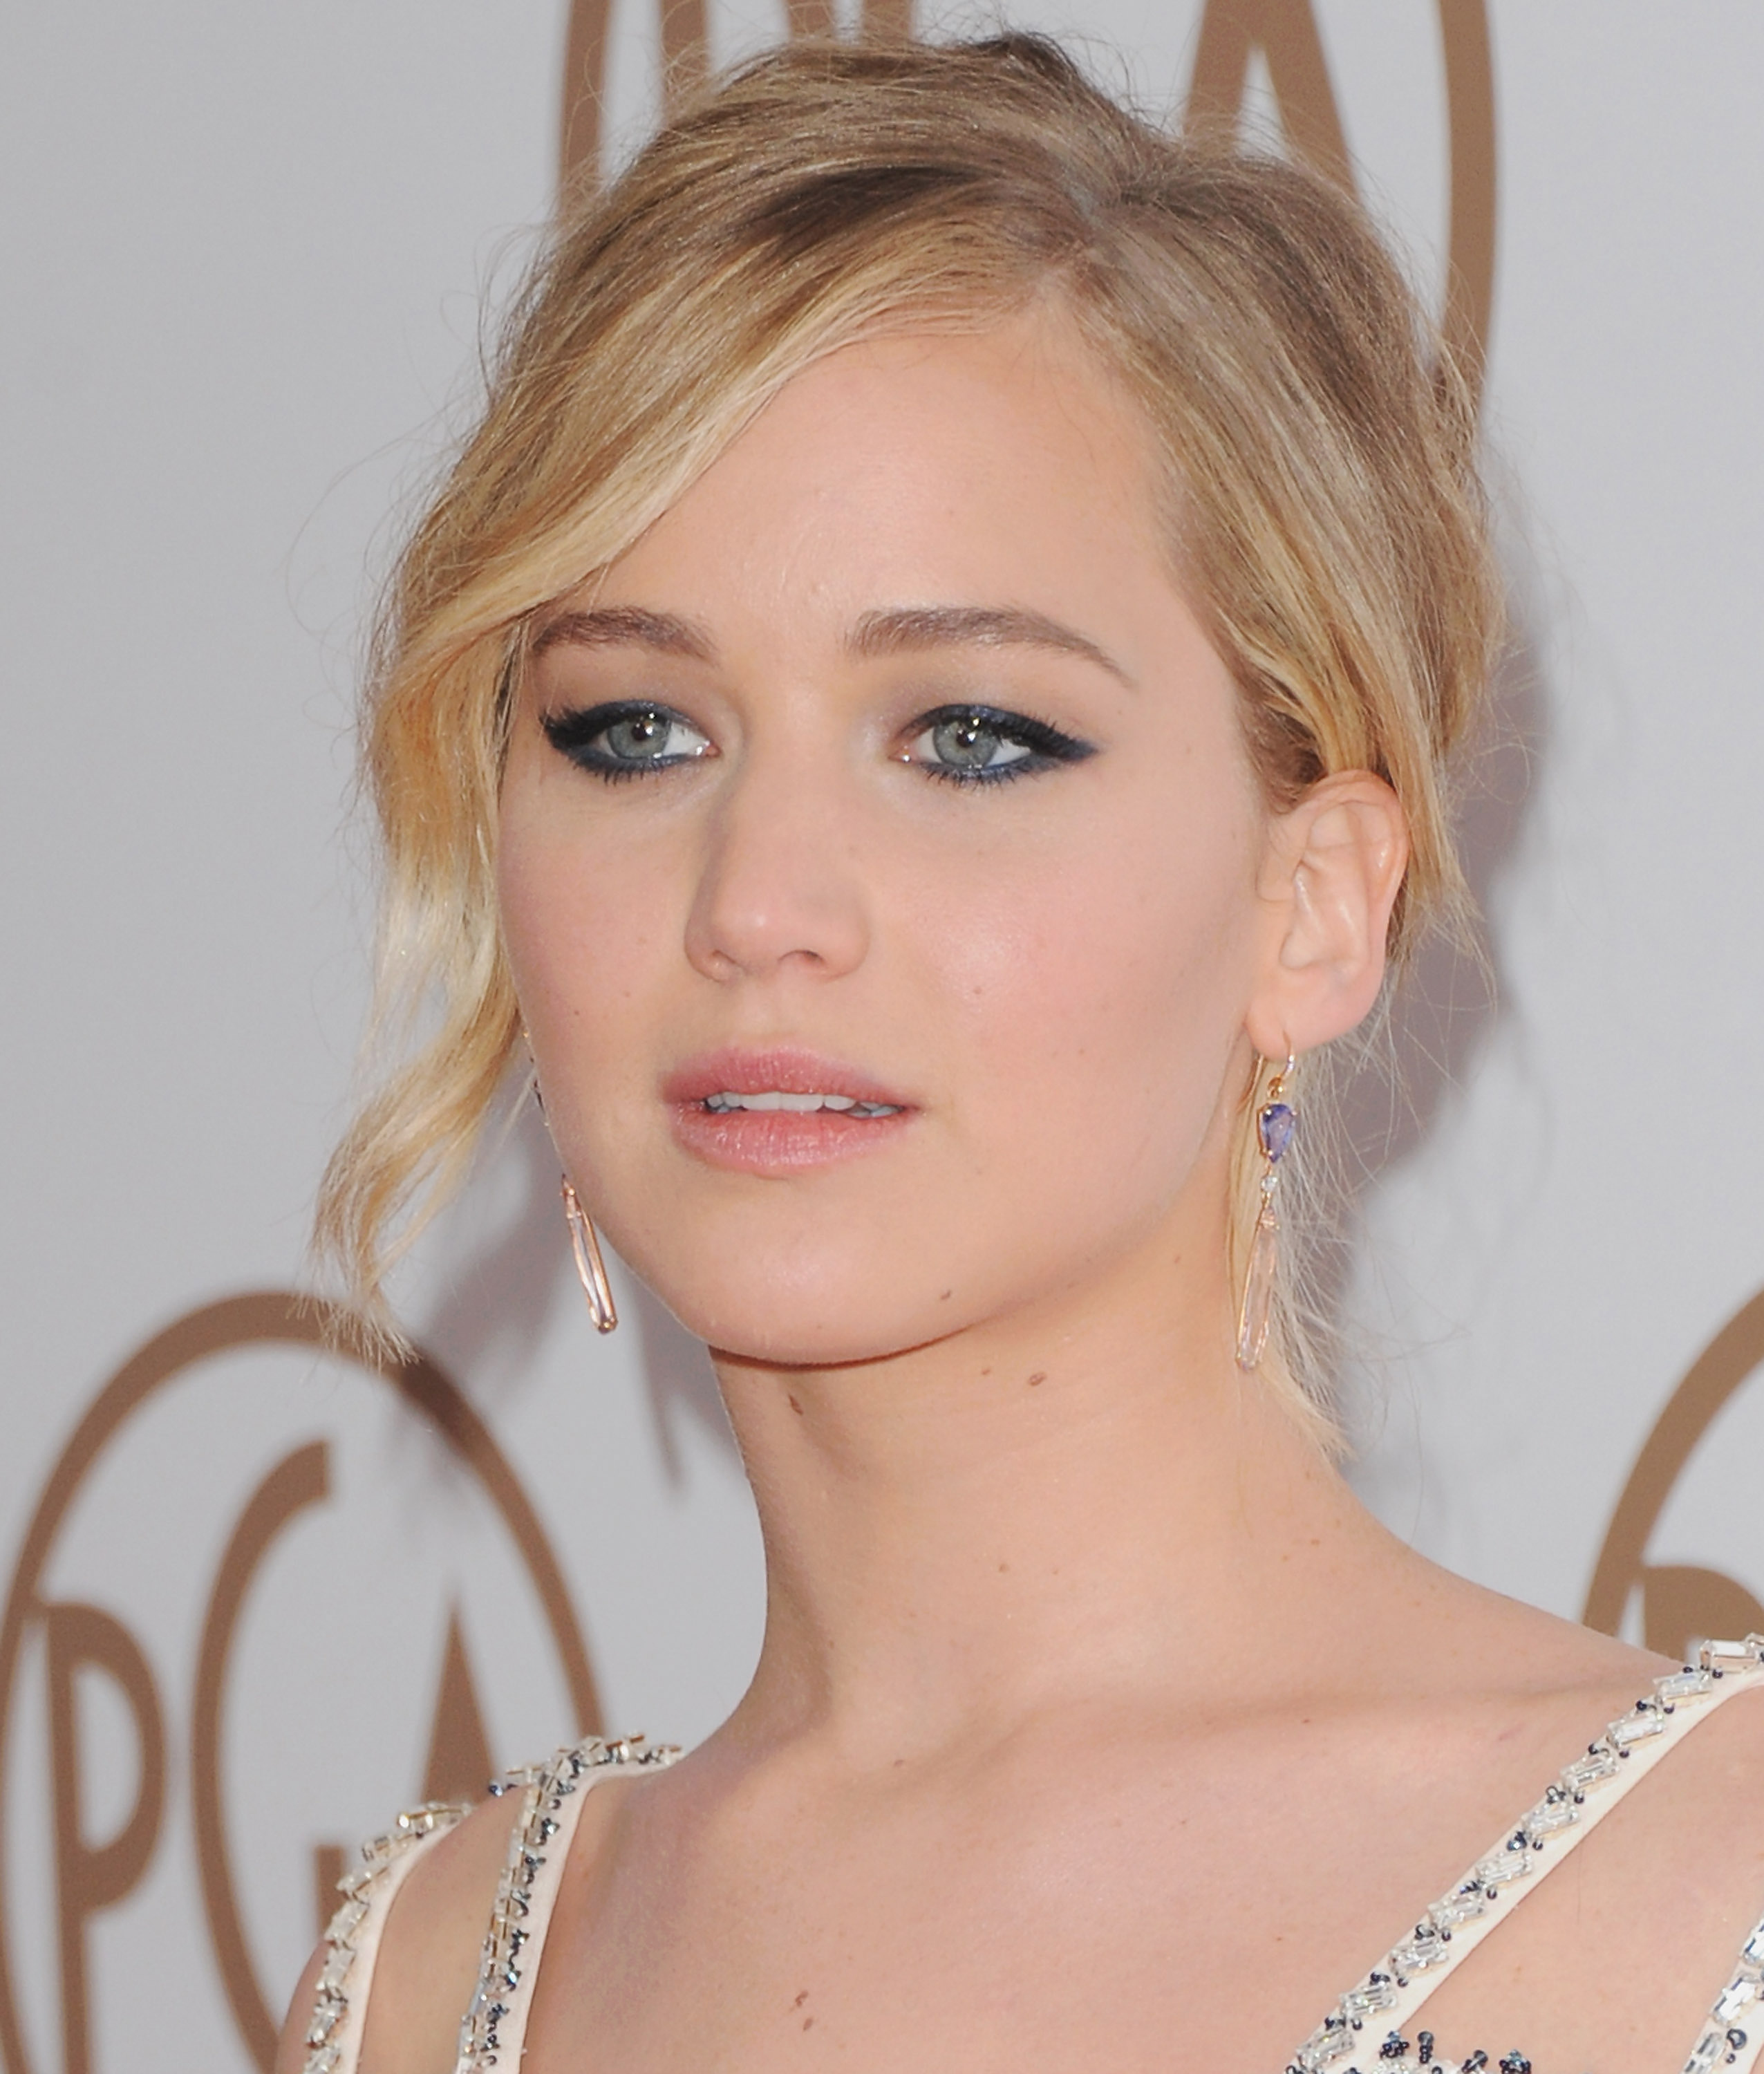 Jennifer Lawrence  at the 26th Annual PGA Awards  on Jan. 24, 2015 in Los Angeles.